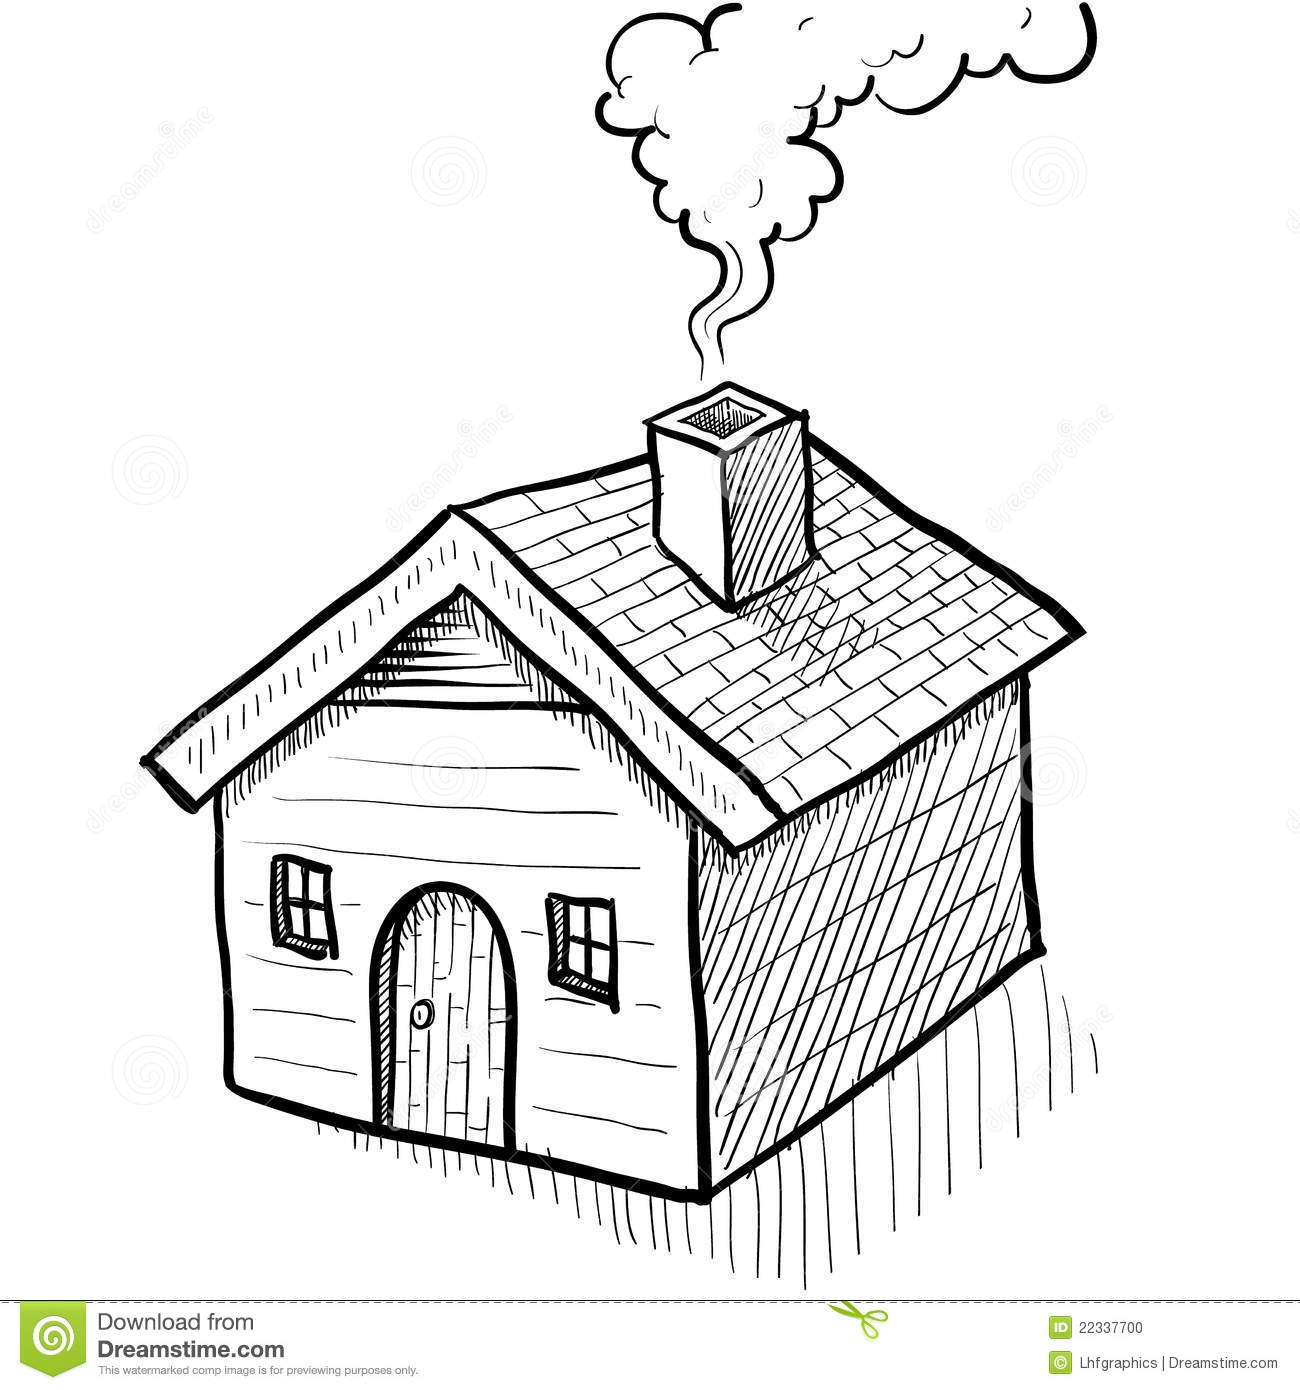 Comfy House Sketch Stock Photo Image 22337700